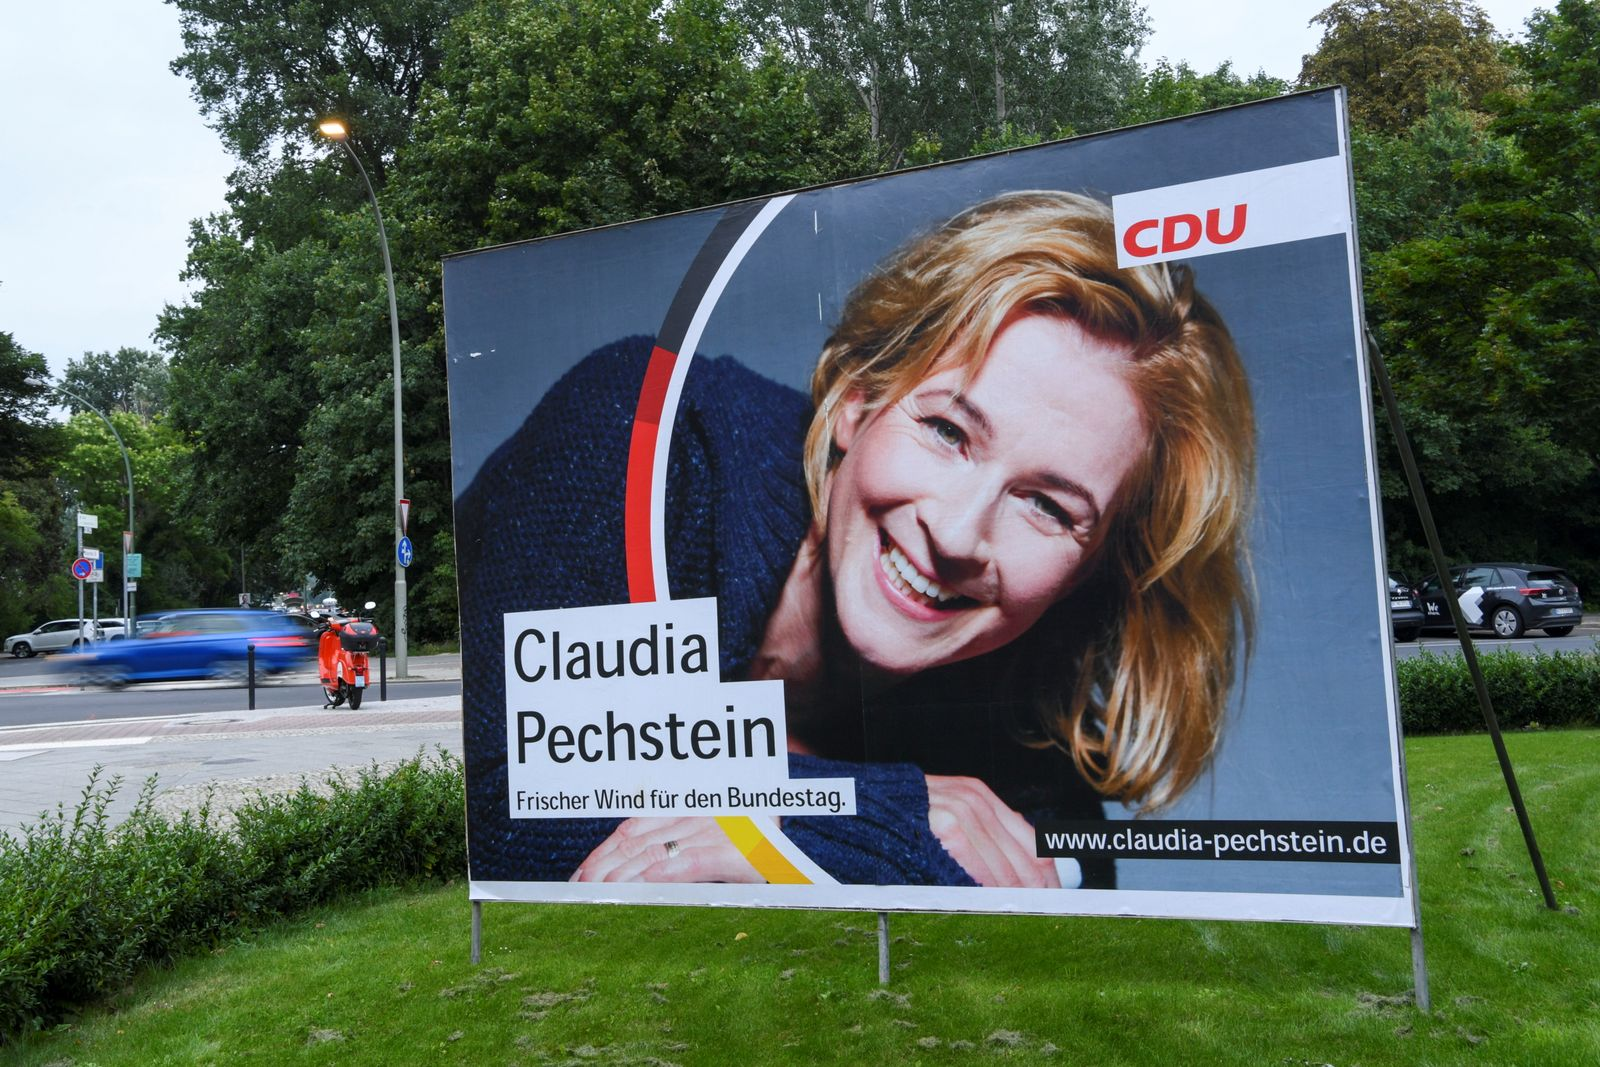 Speed skater Claudia Pechstein stands as a CDU candidate for a seat in the German Bundestag